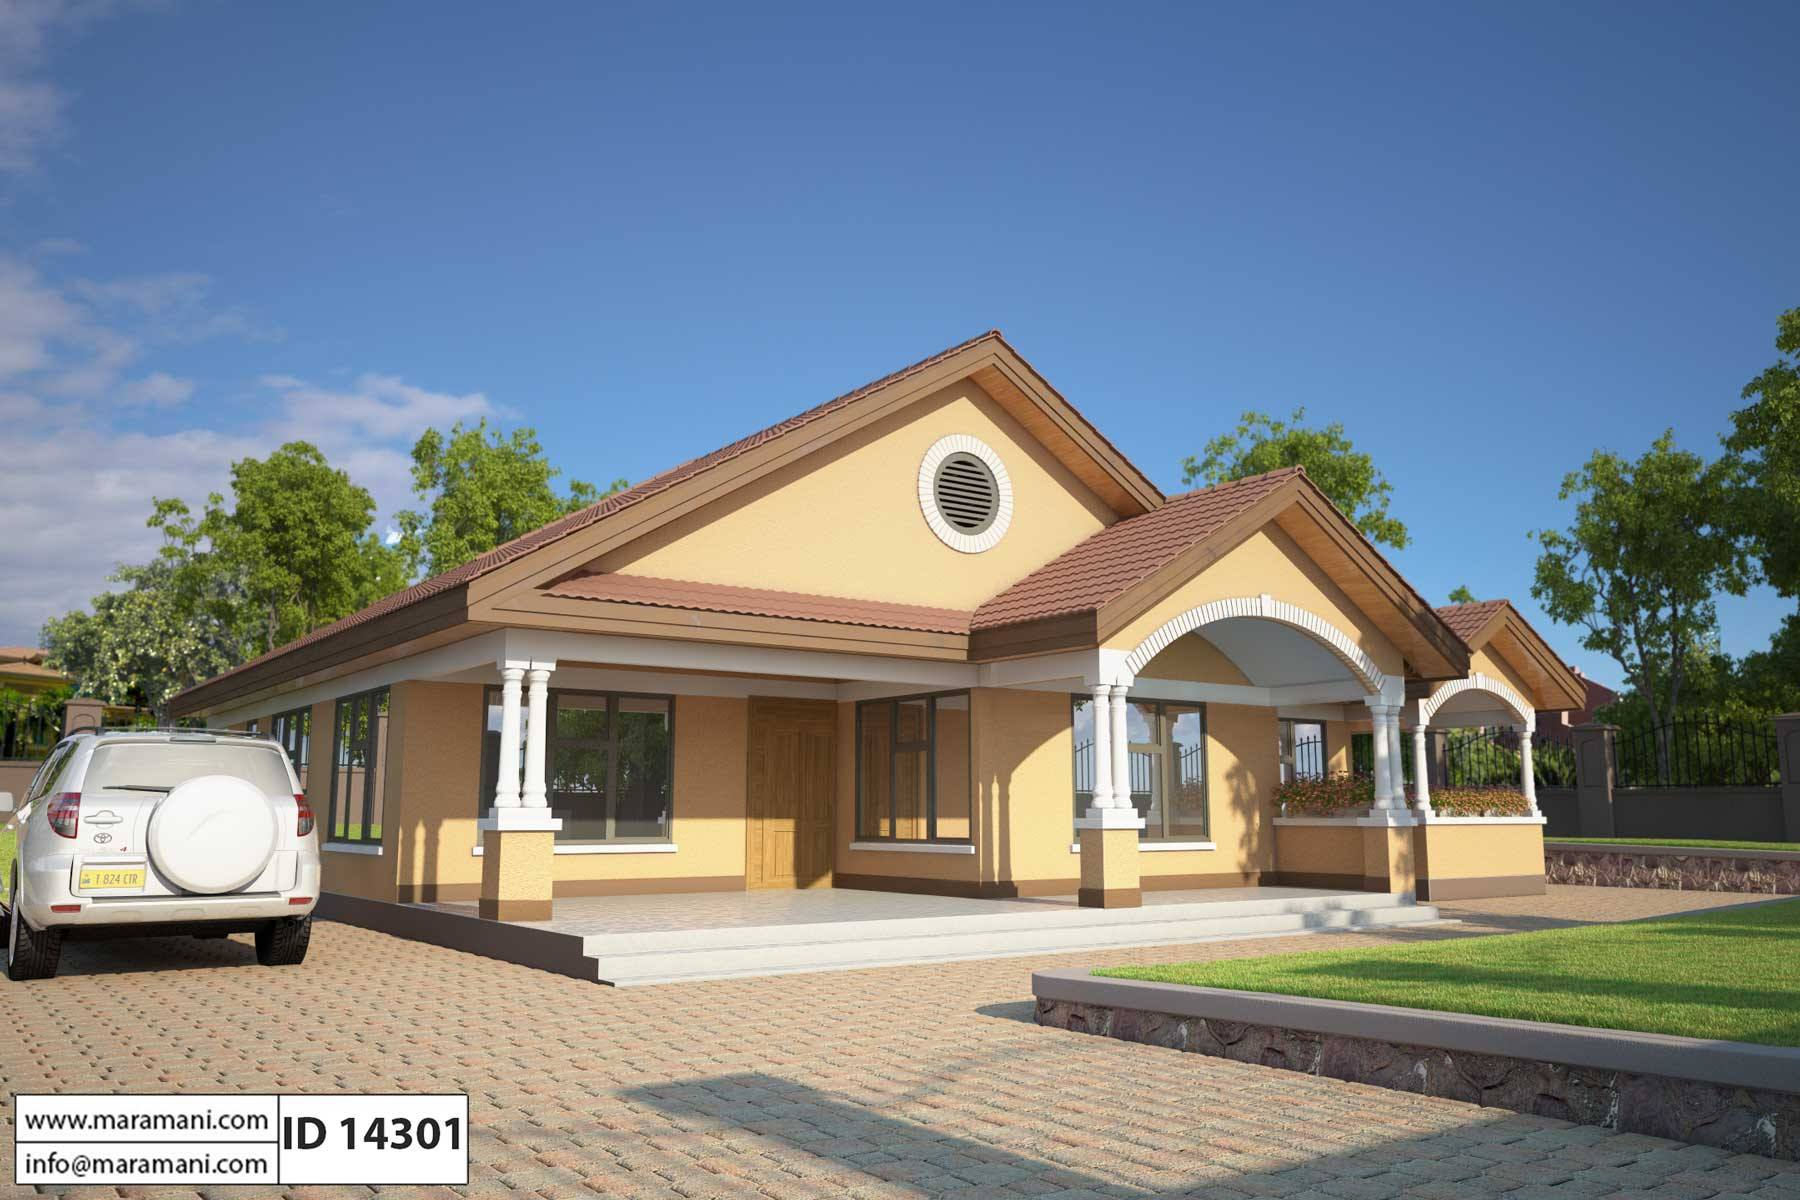 bedroom single story house plan id 14301 house plans by maramani 4 bedroom single story house plan id 14301 house plans by maramani